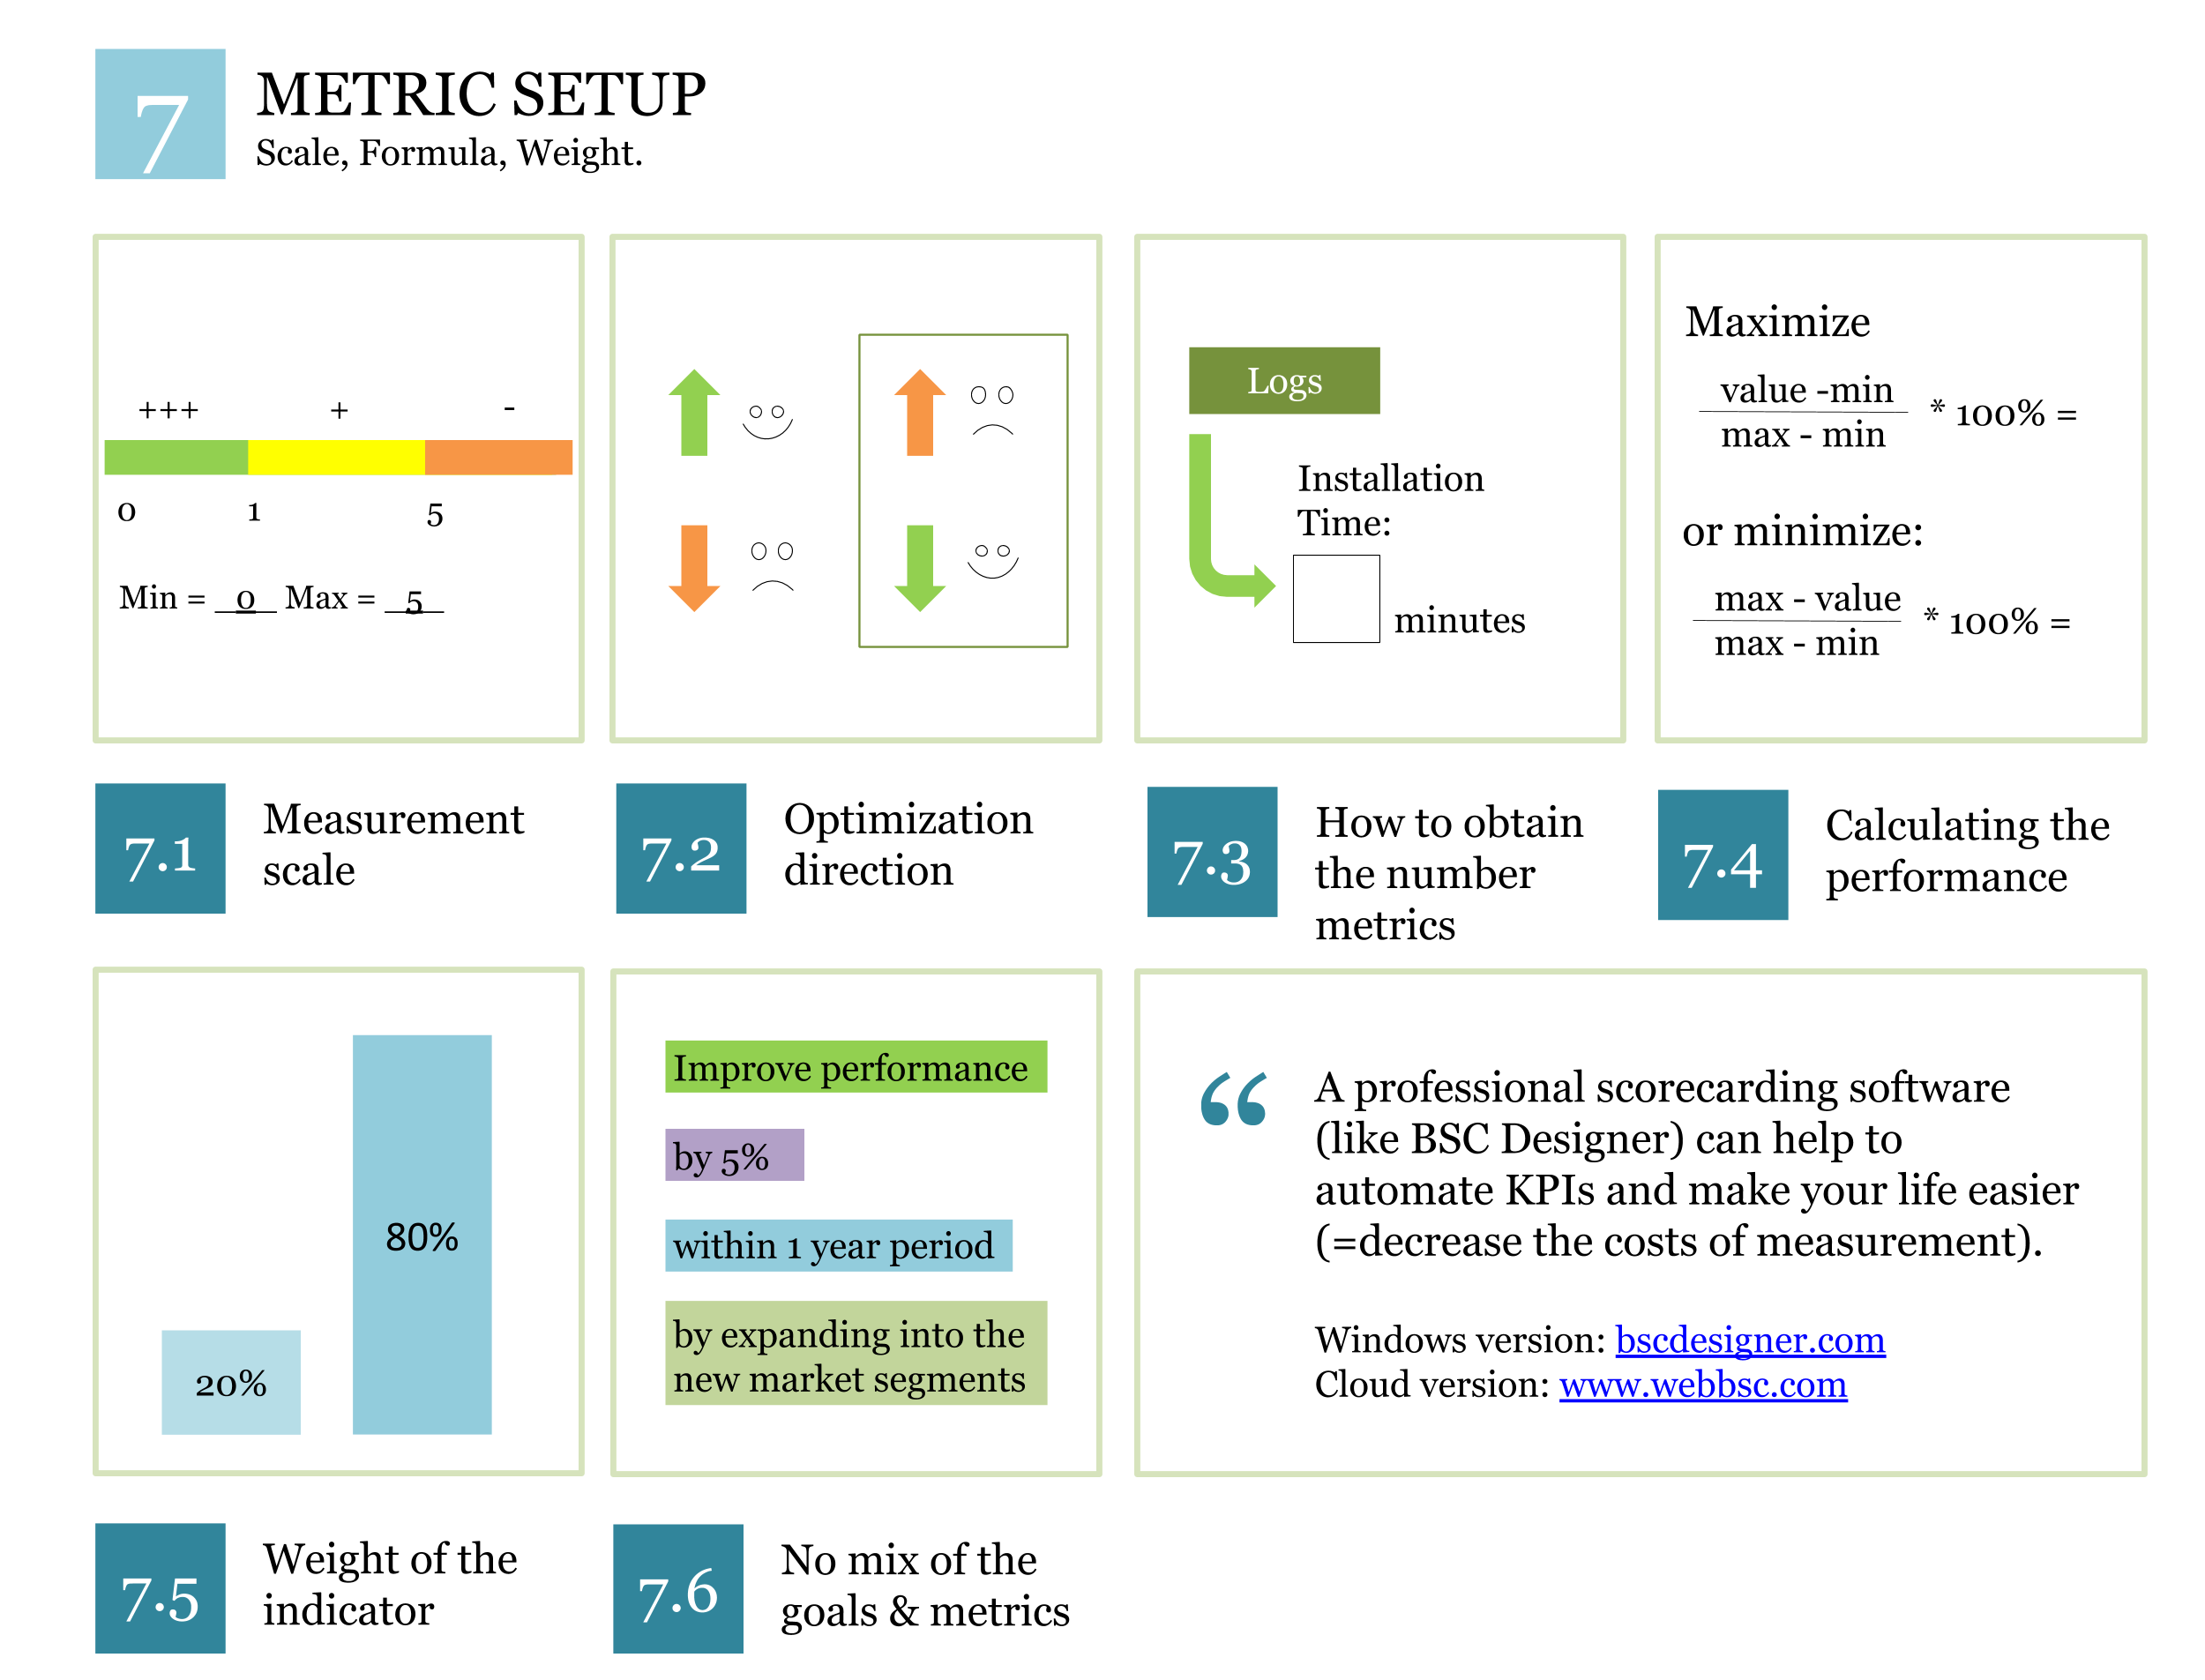 12 Steps System For The Most Challenging Metrics And Kpis